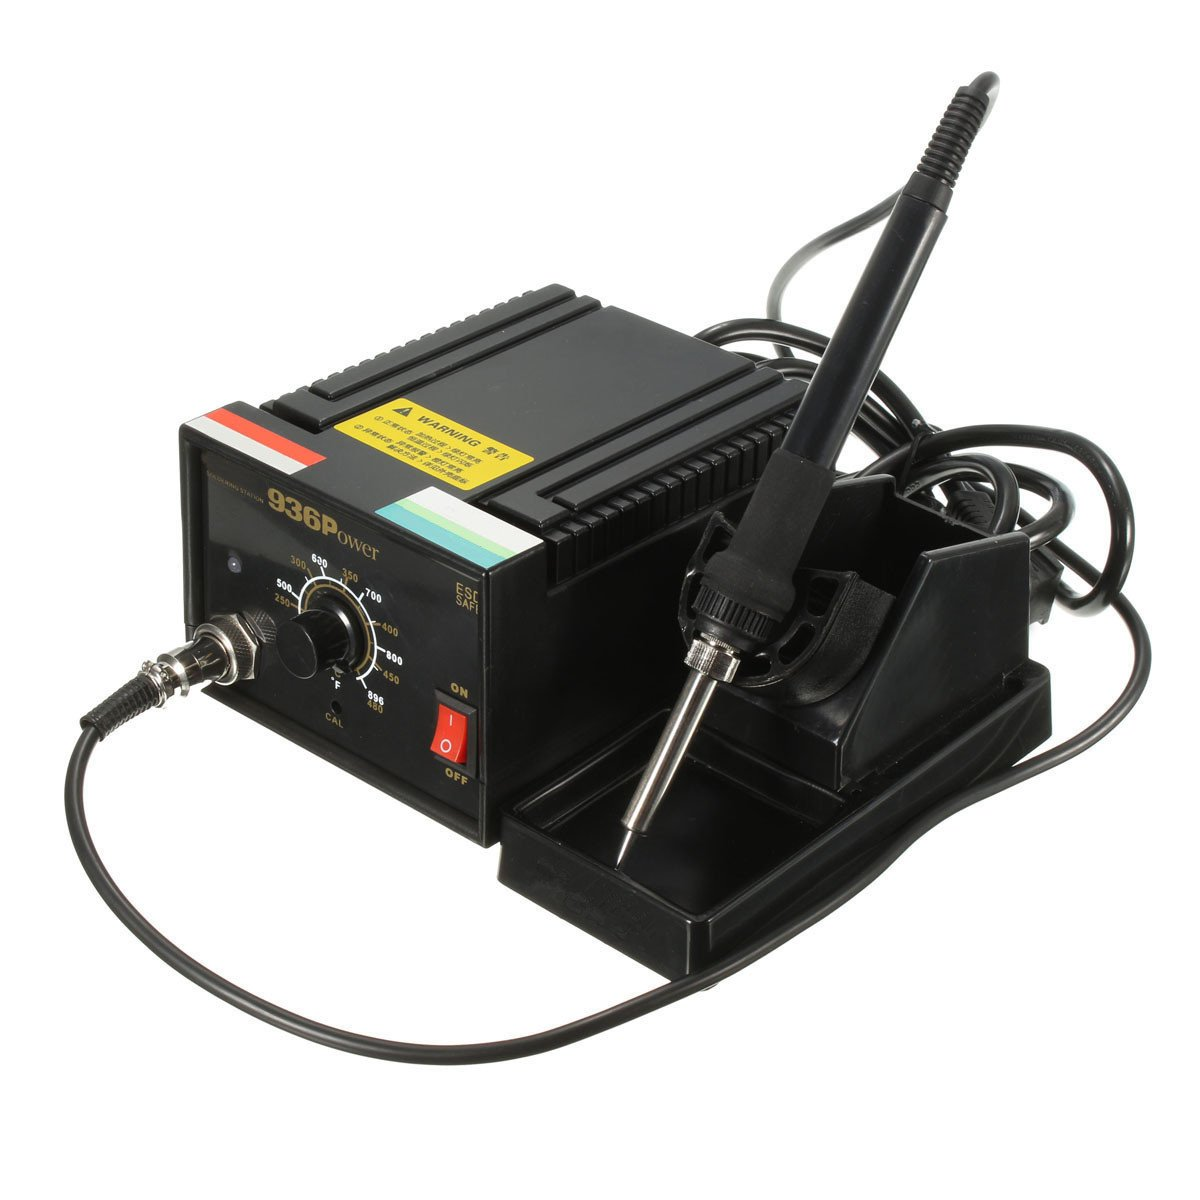 110V Inverter Frequency Change Electric 936 Power Soldering Station Iron